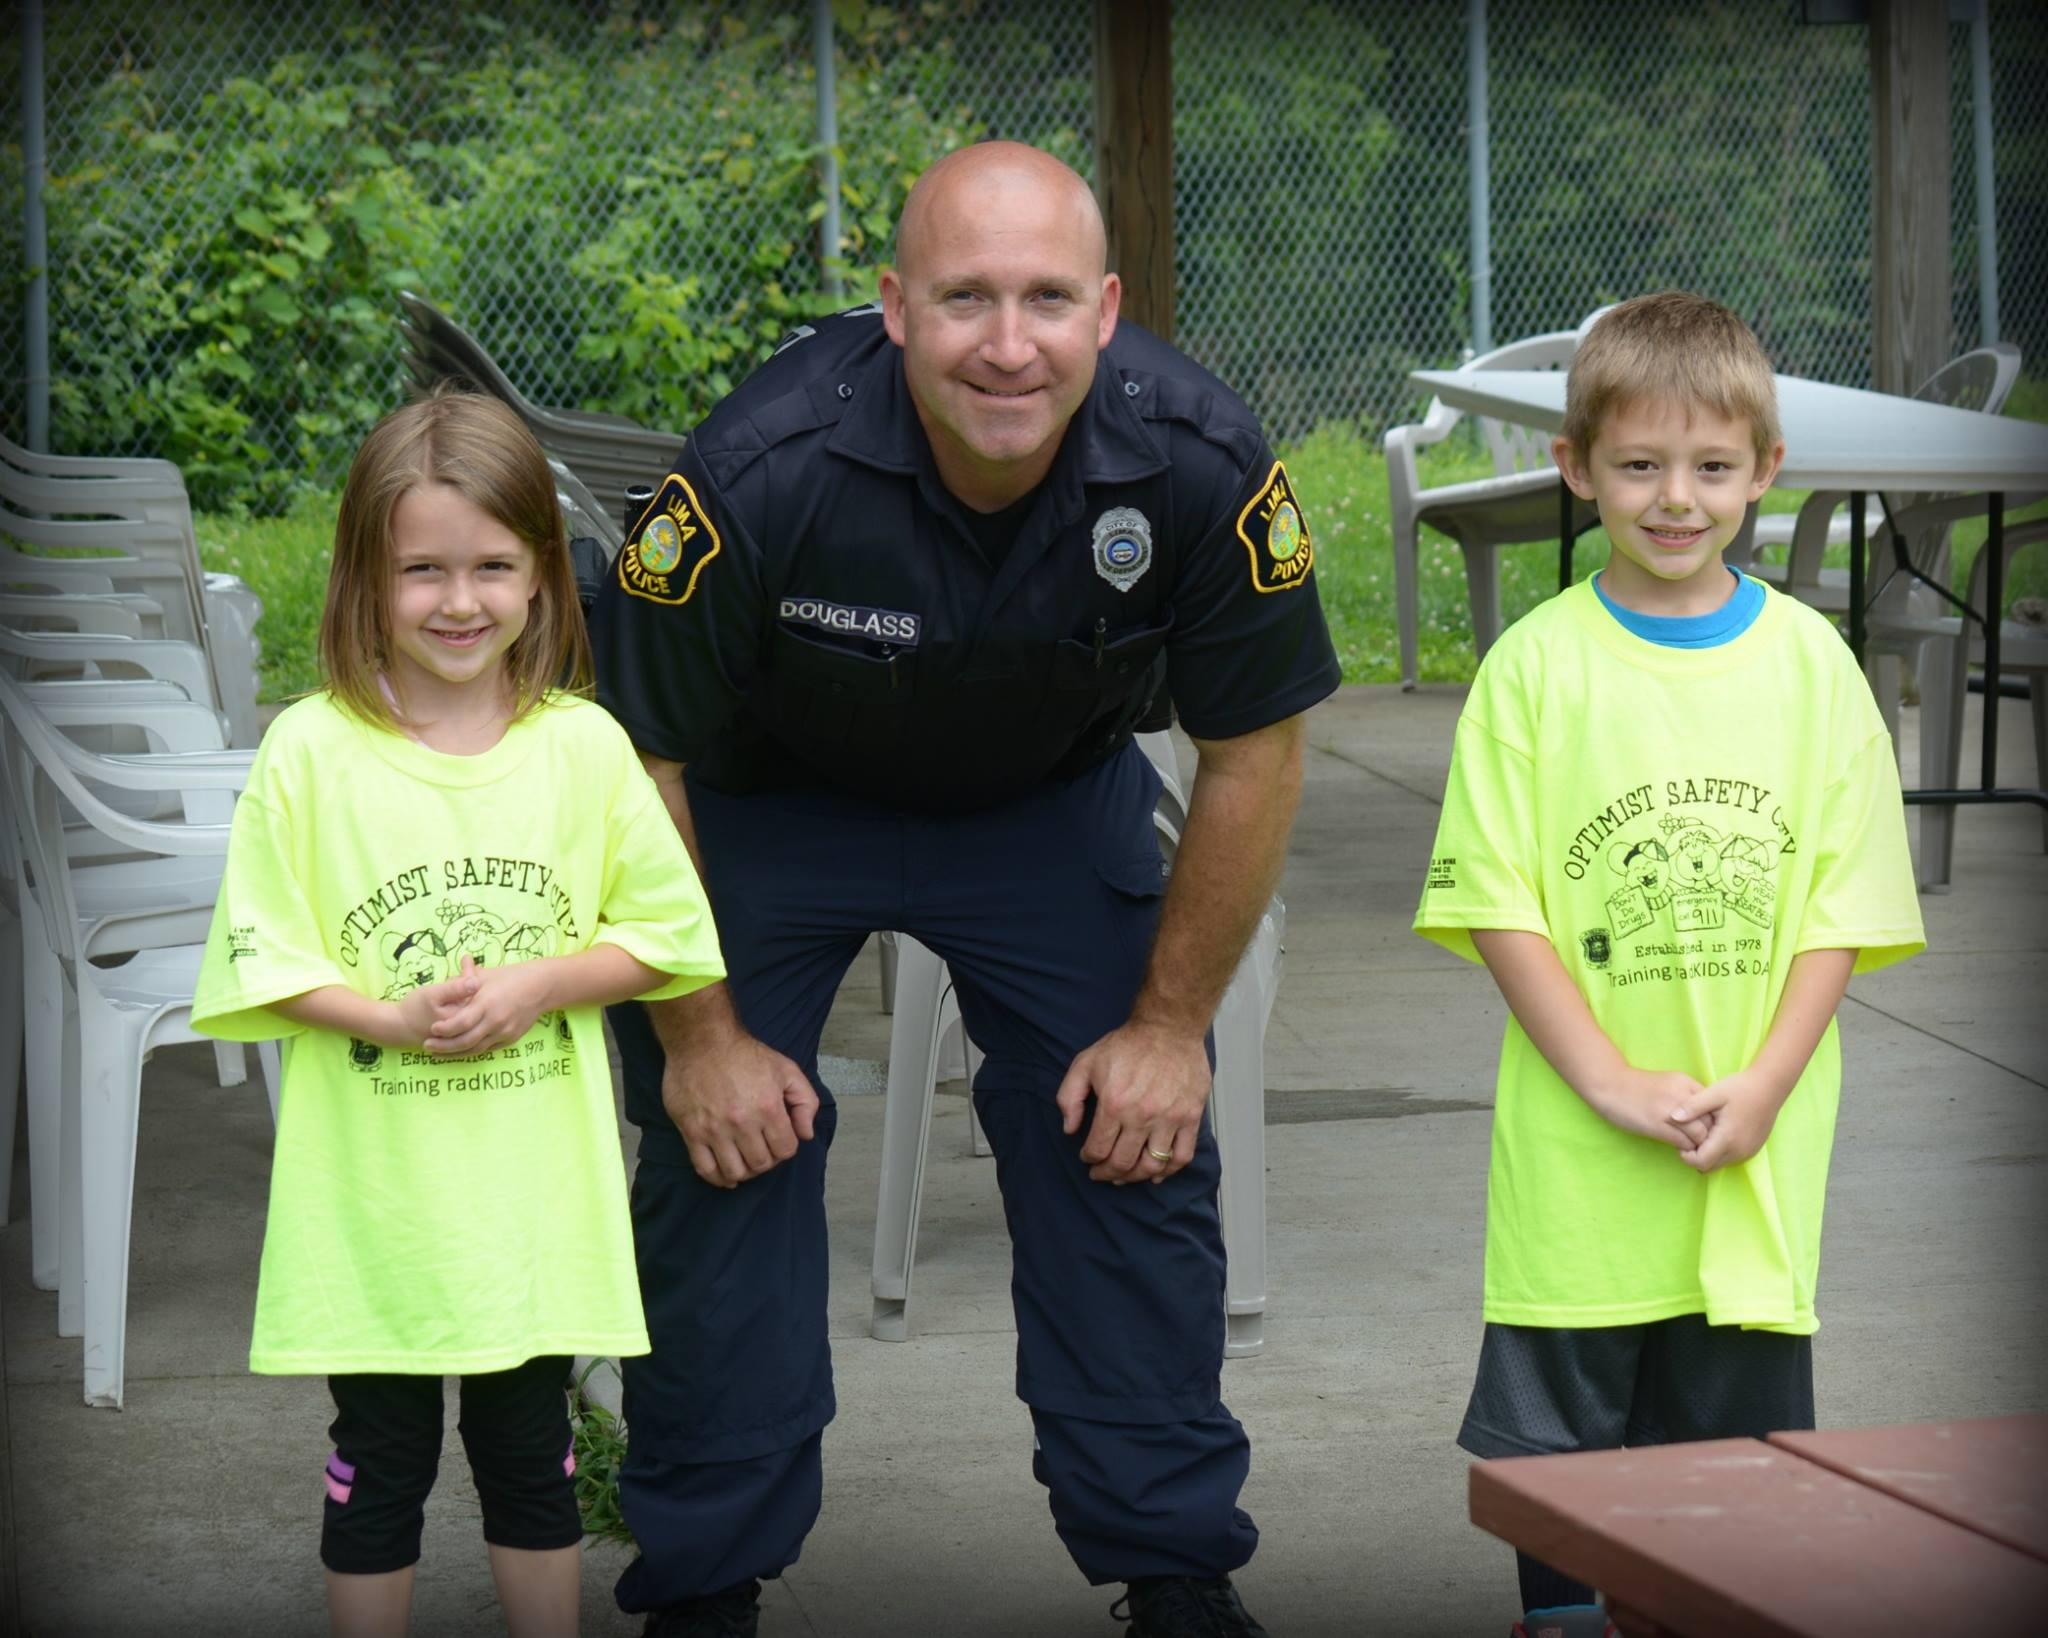 police officer with two children